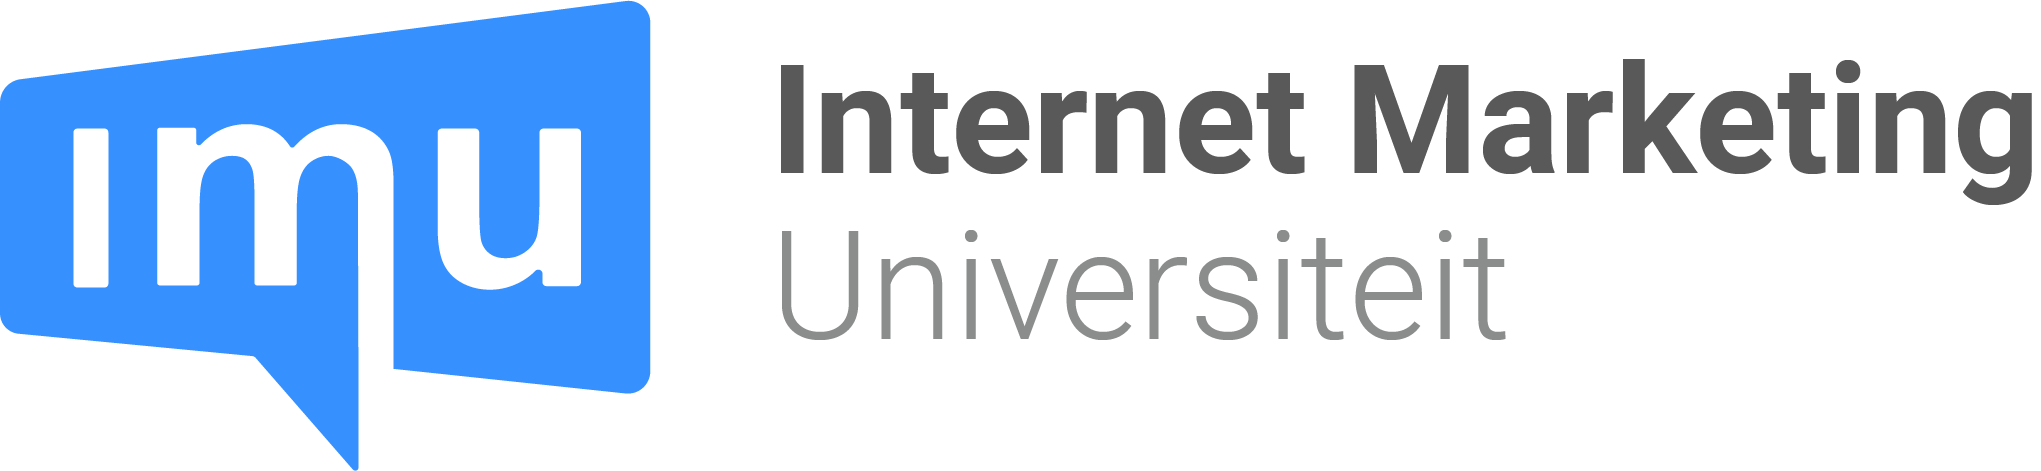 Internet Marketing Universiteit